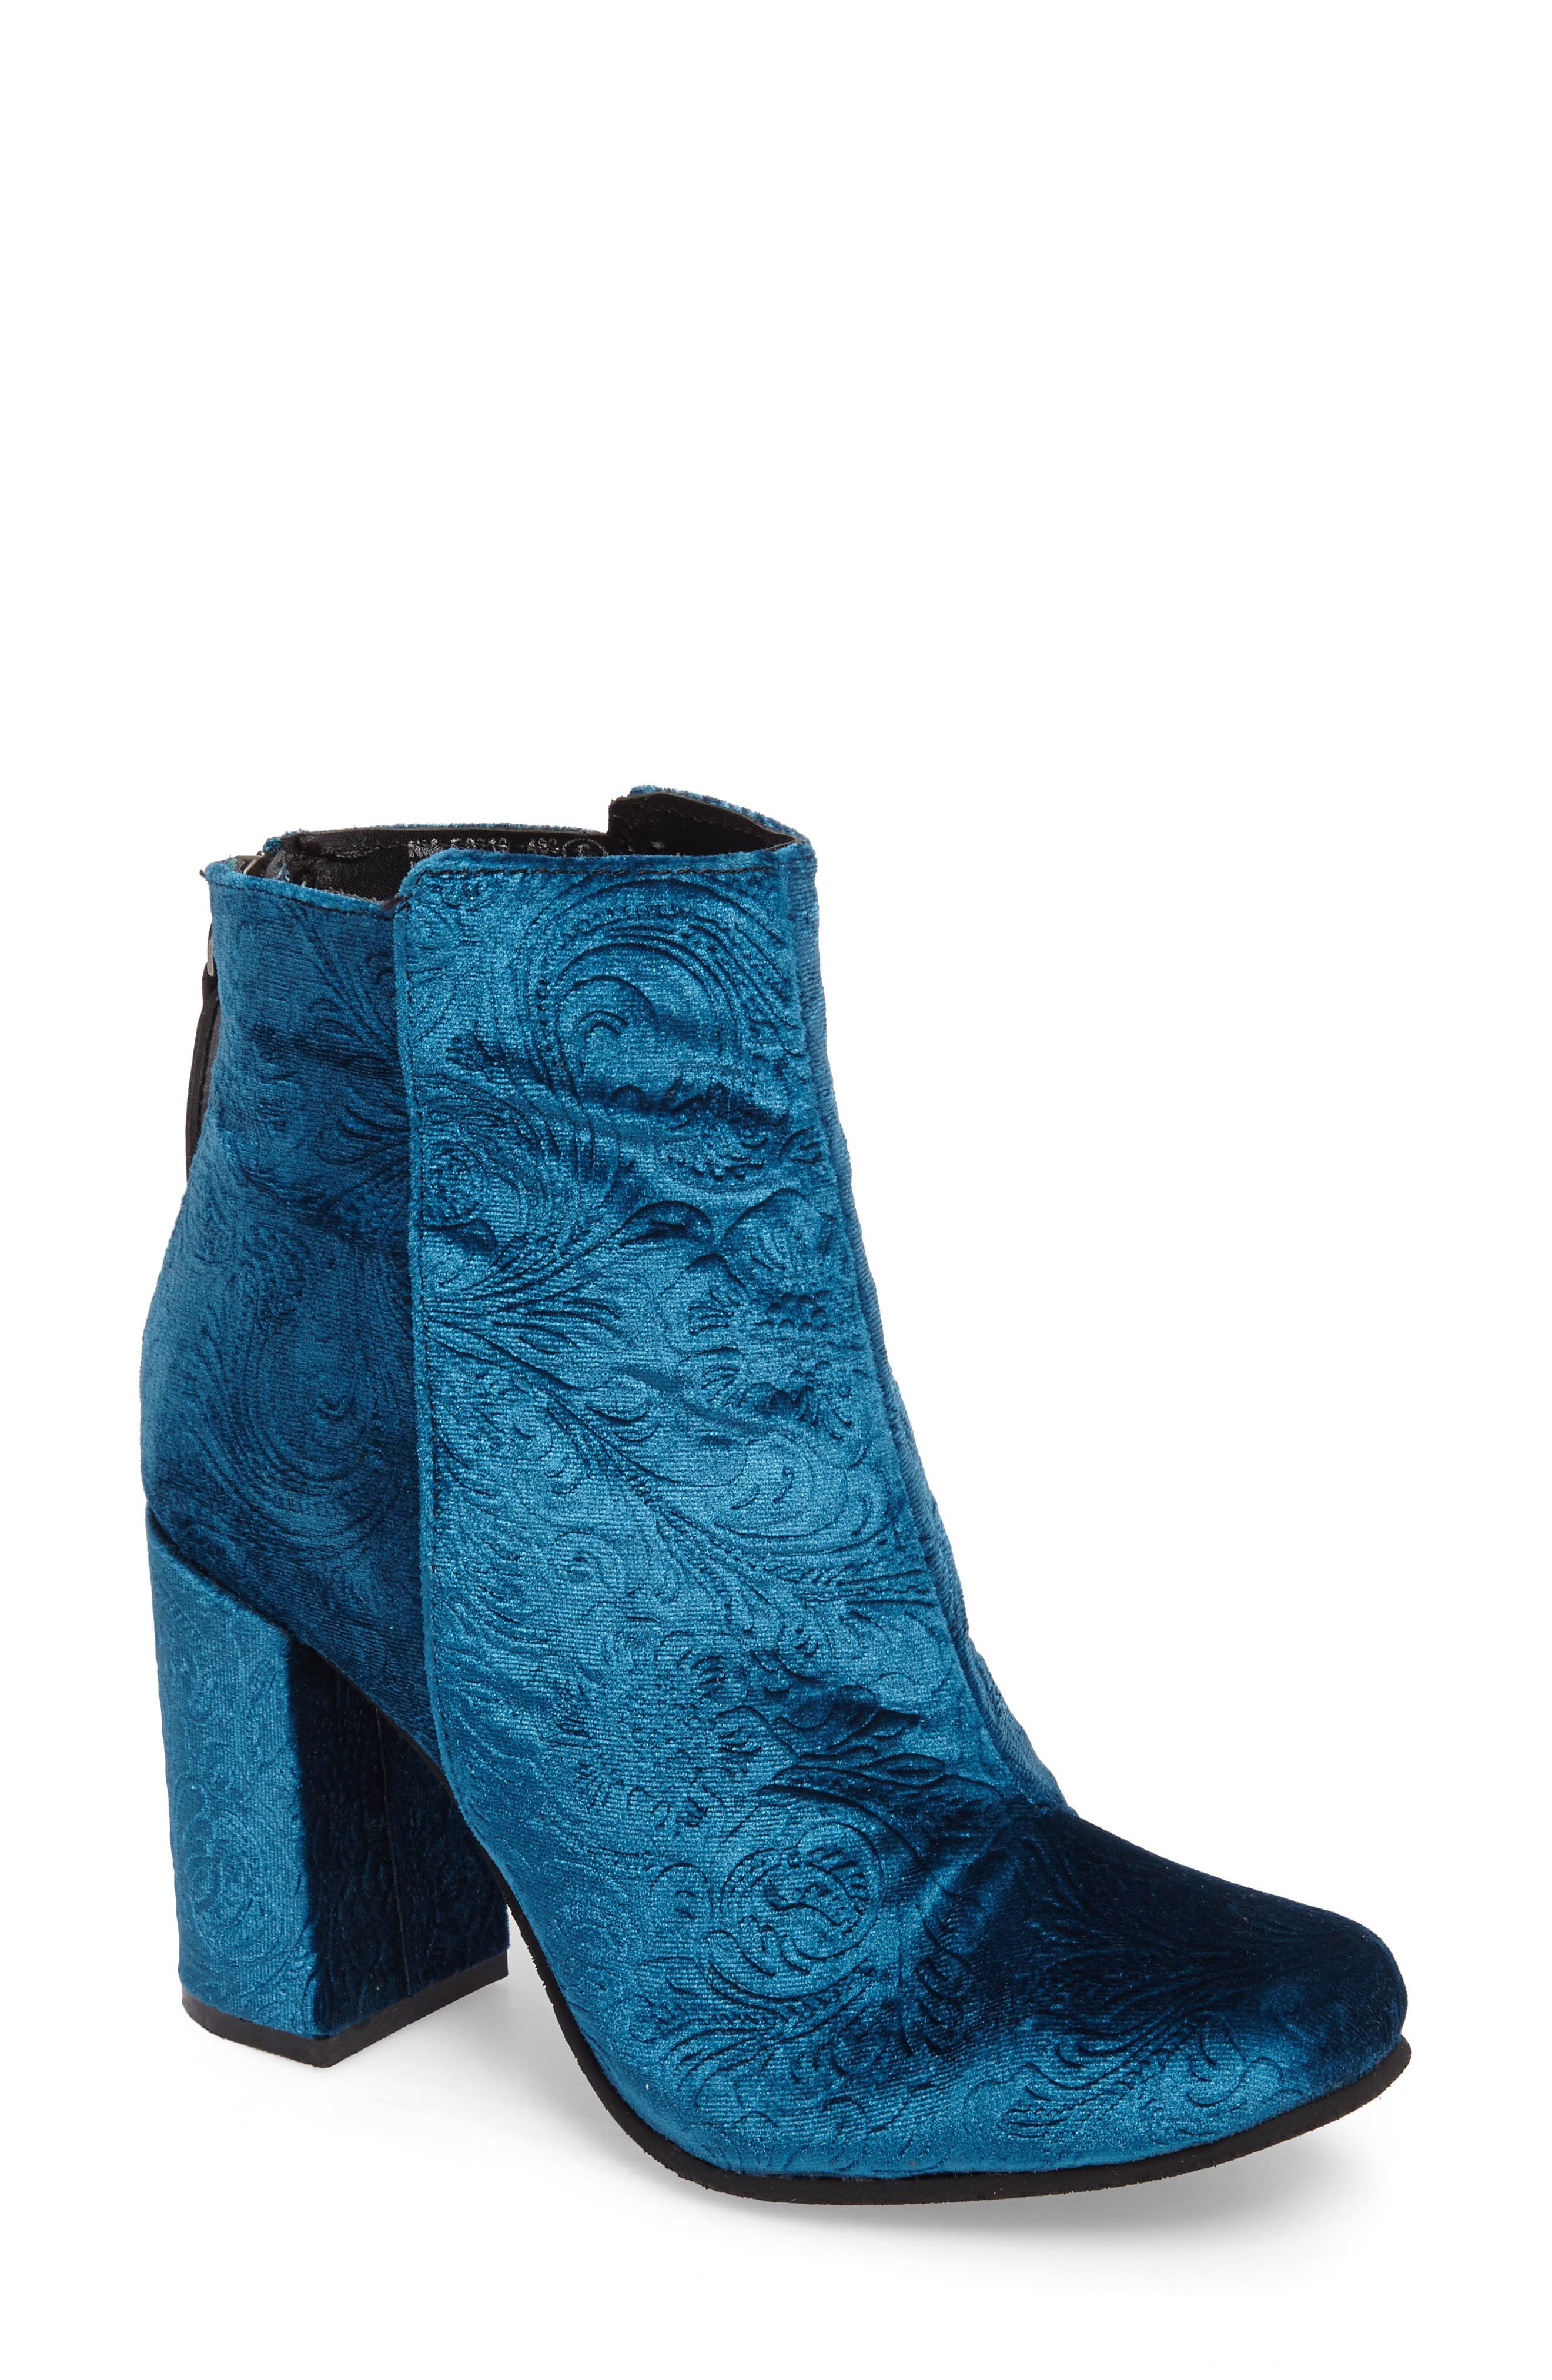 Nadonna Bootie,                             Main thumbnail 1, color,                             Teal Fabric